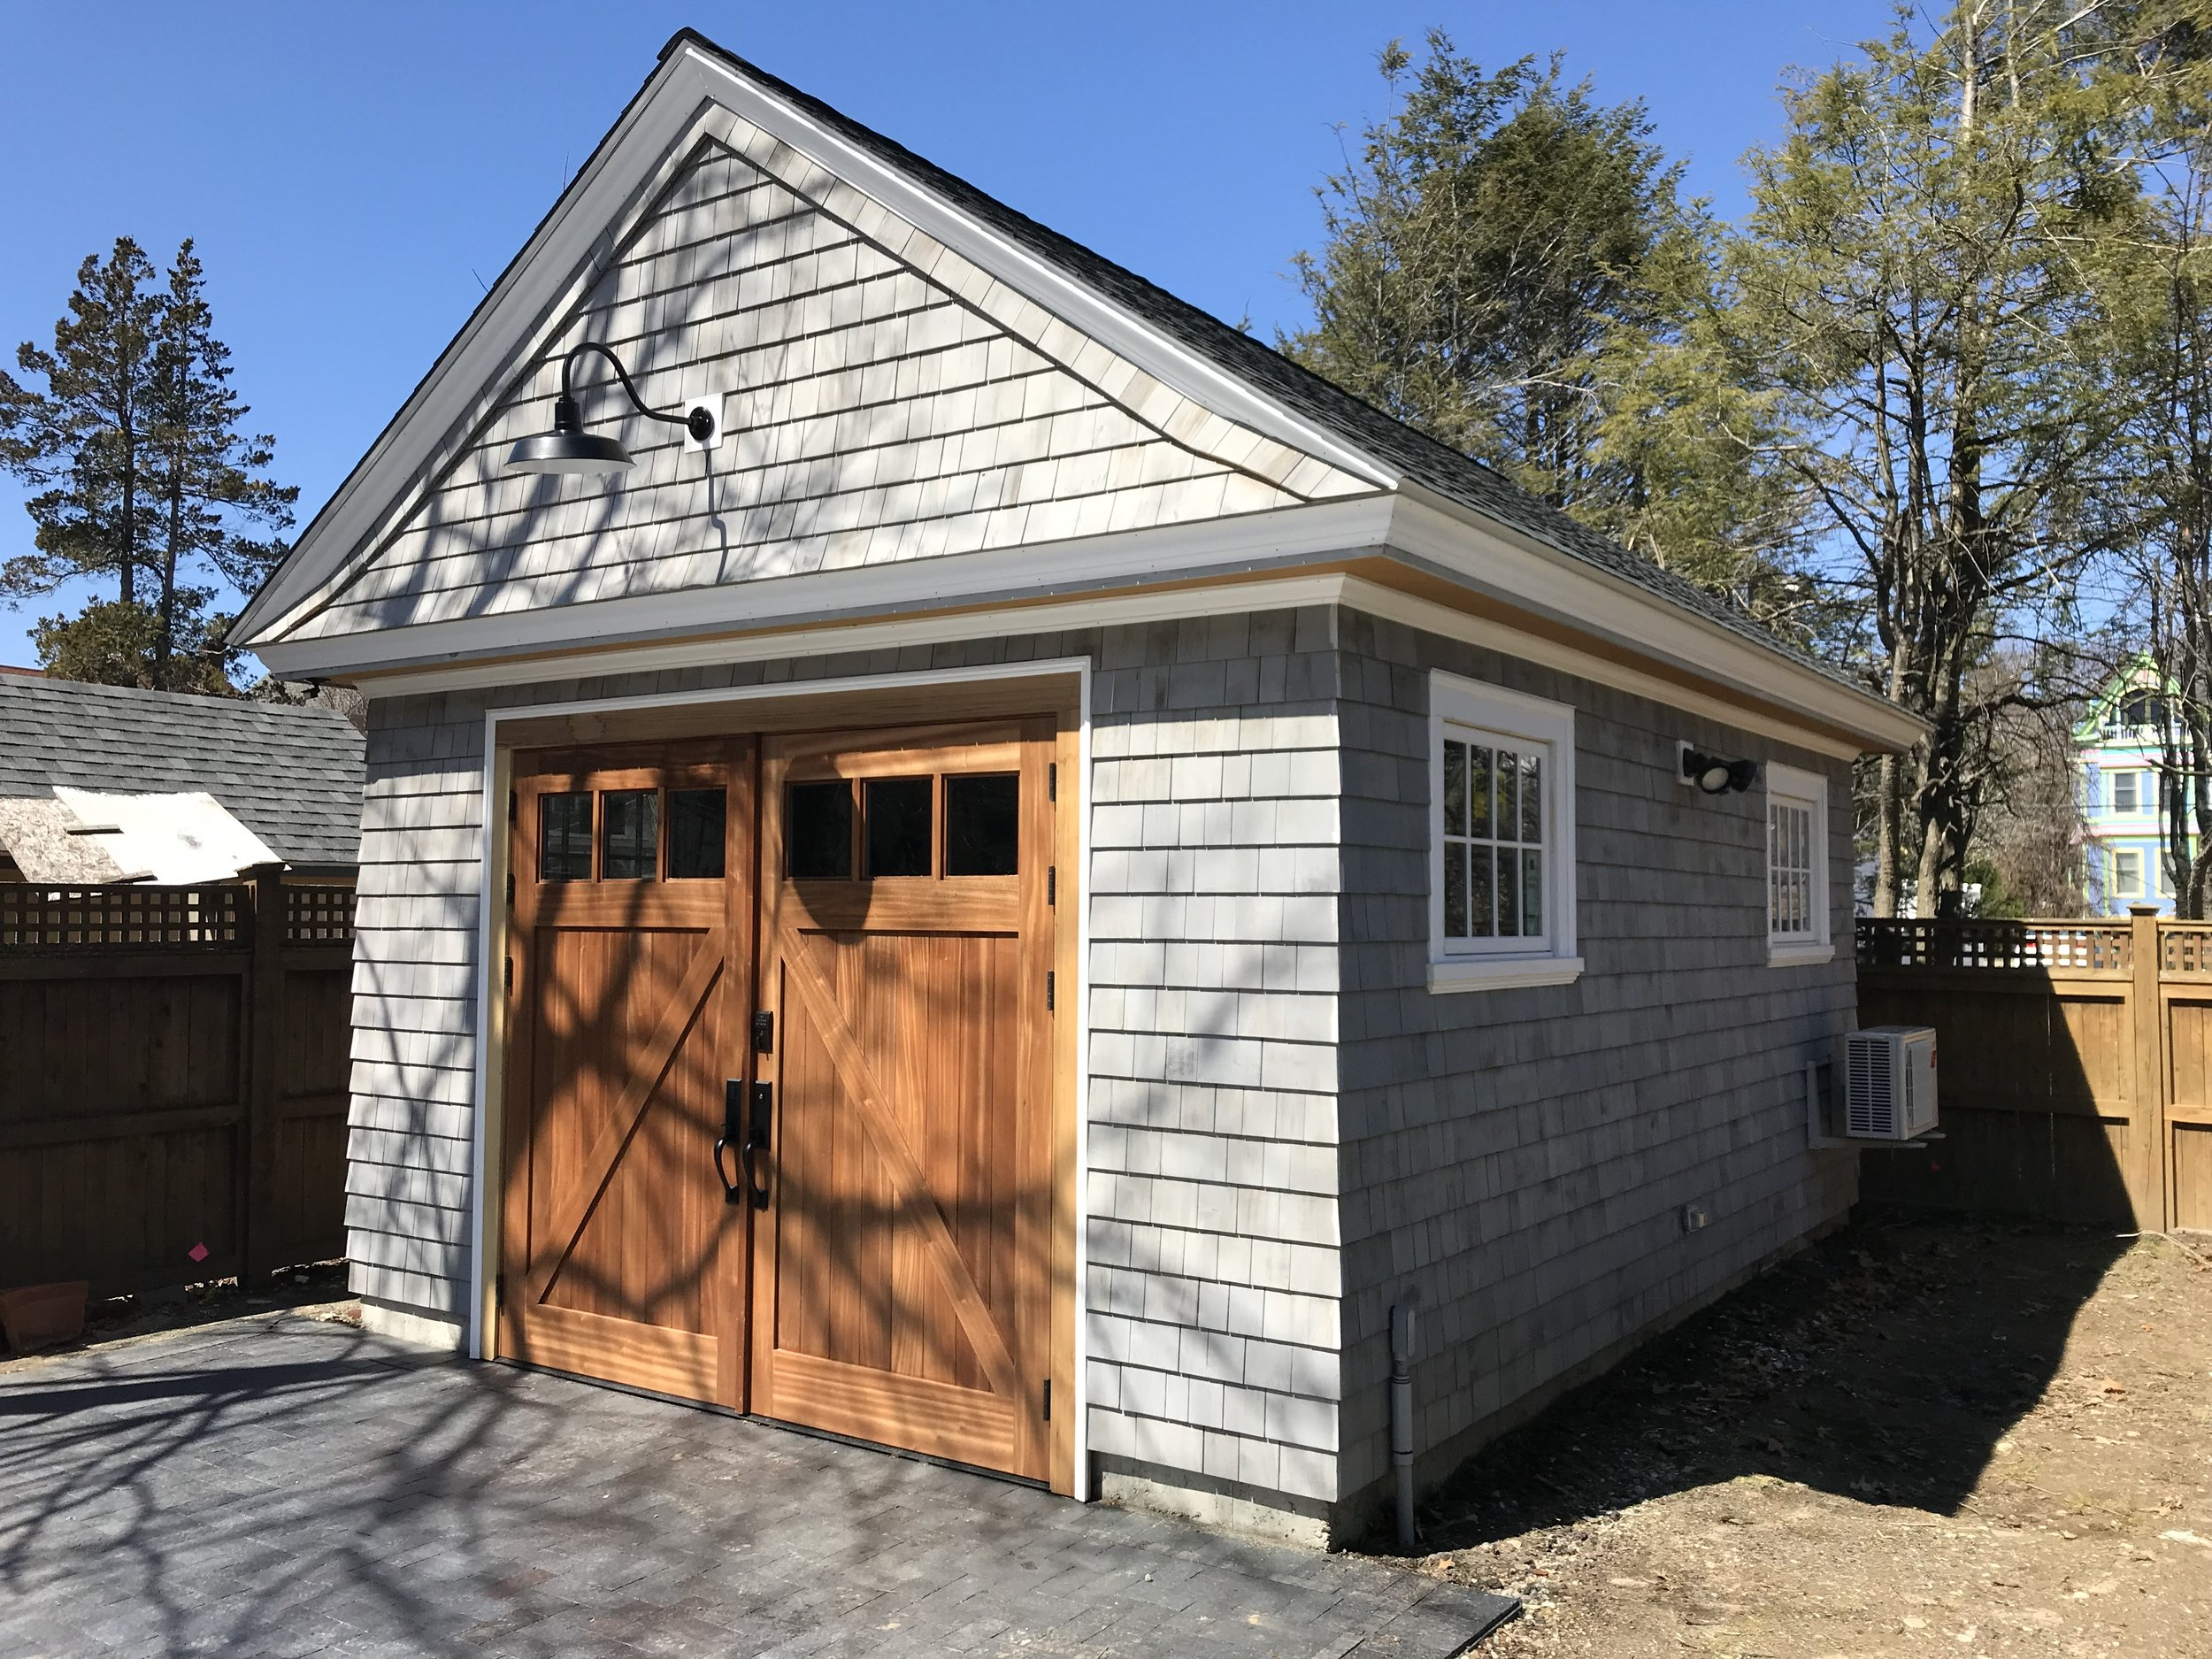 New construction carriage barn.